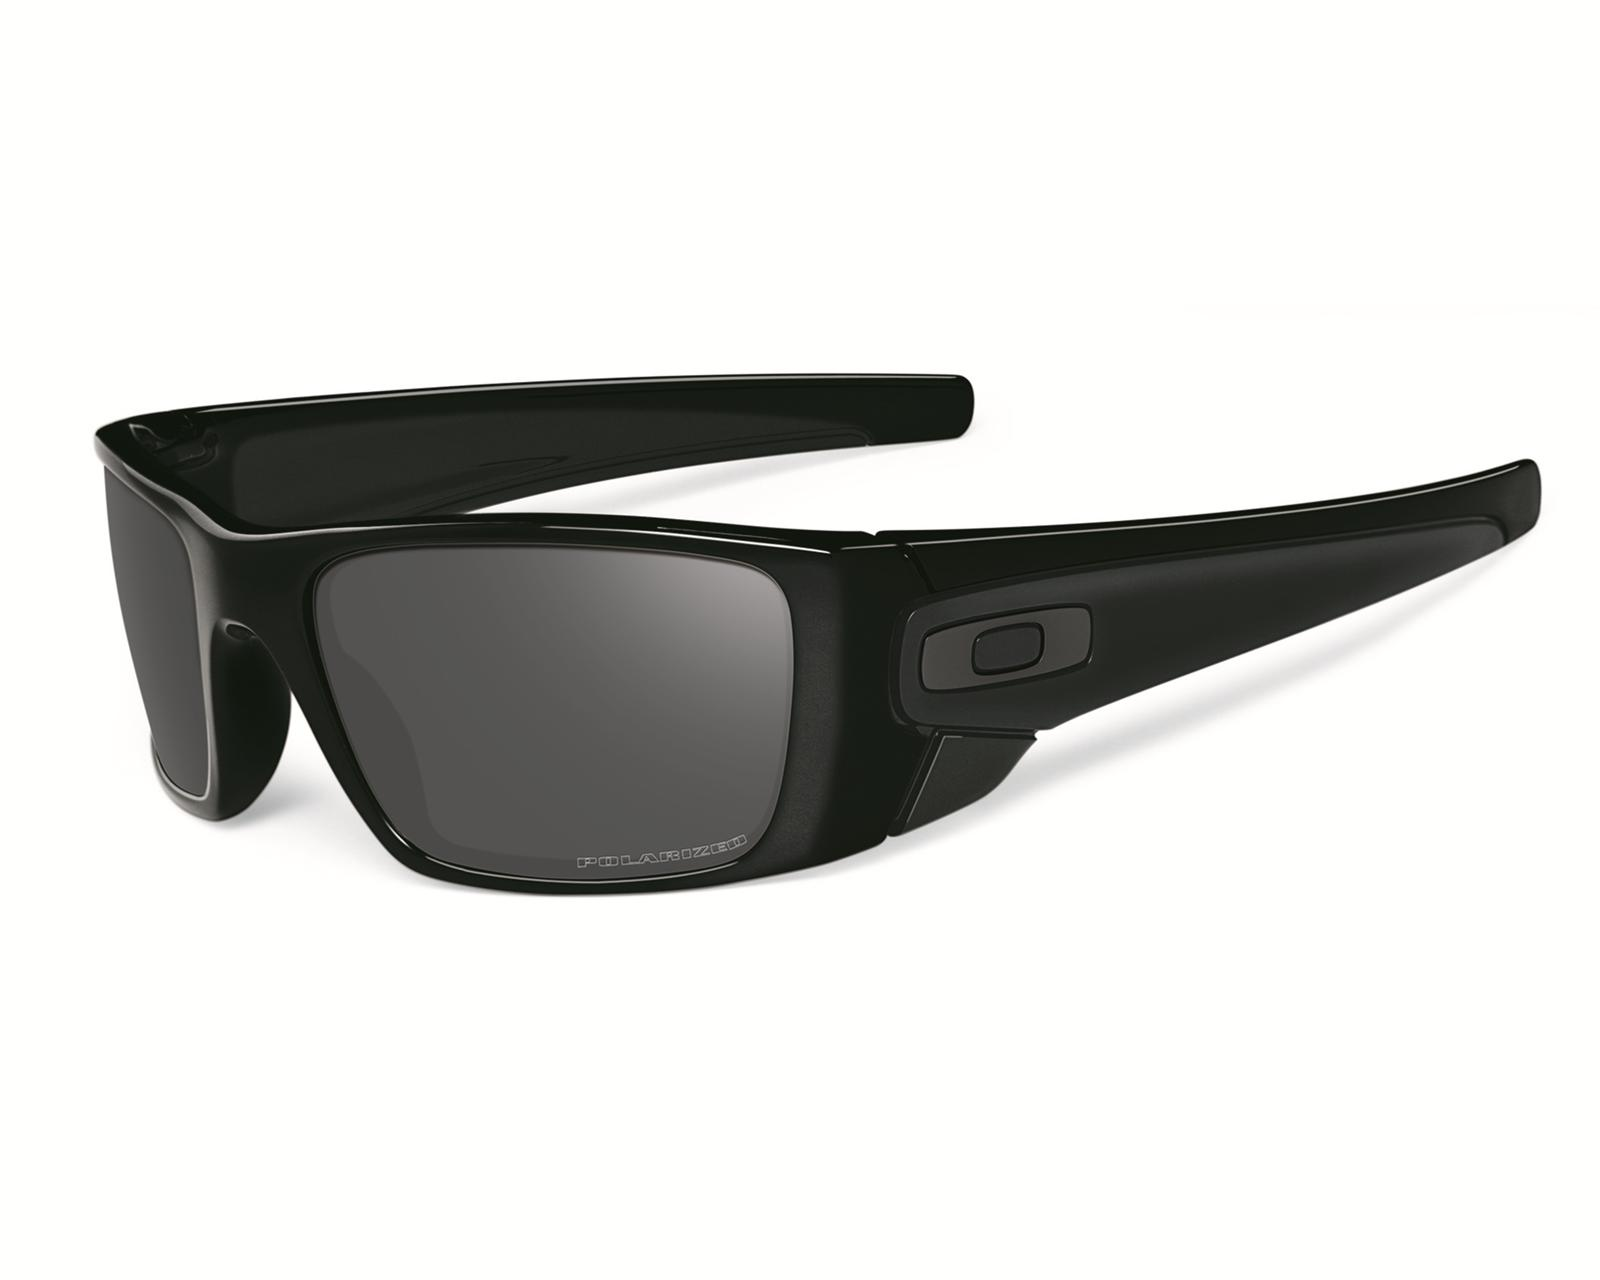 5b1c4743e5 ... netherlands oakley fuel cell sunglasses oo9096 83 free shipping on orders  over 99 at summit racing